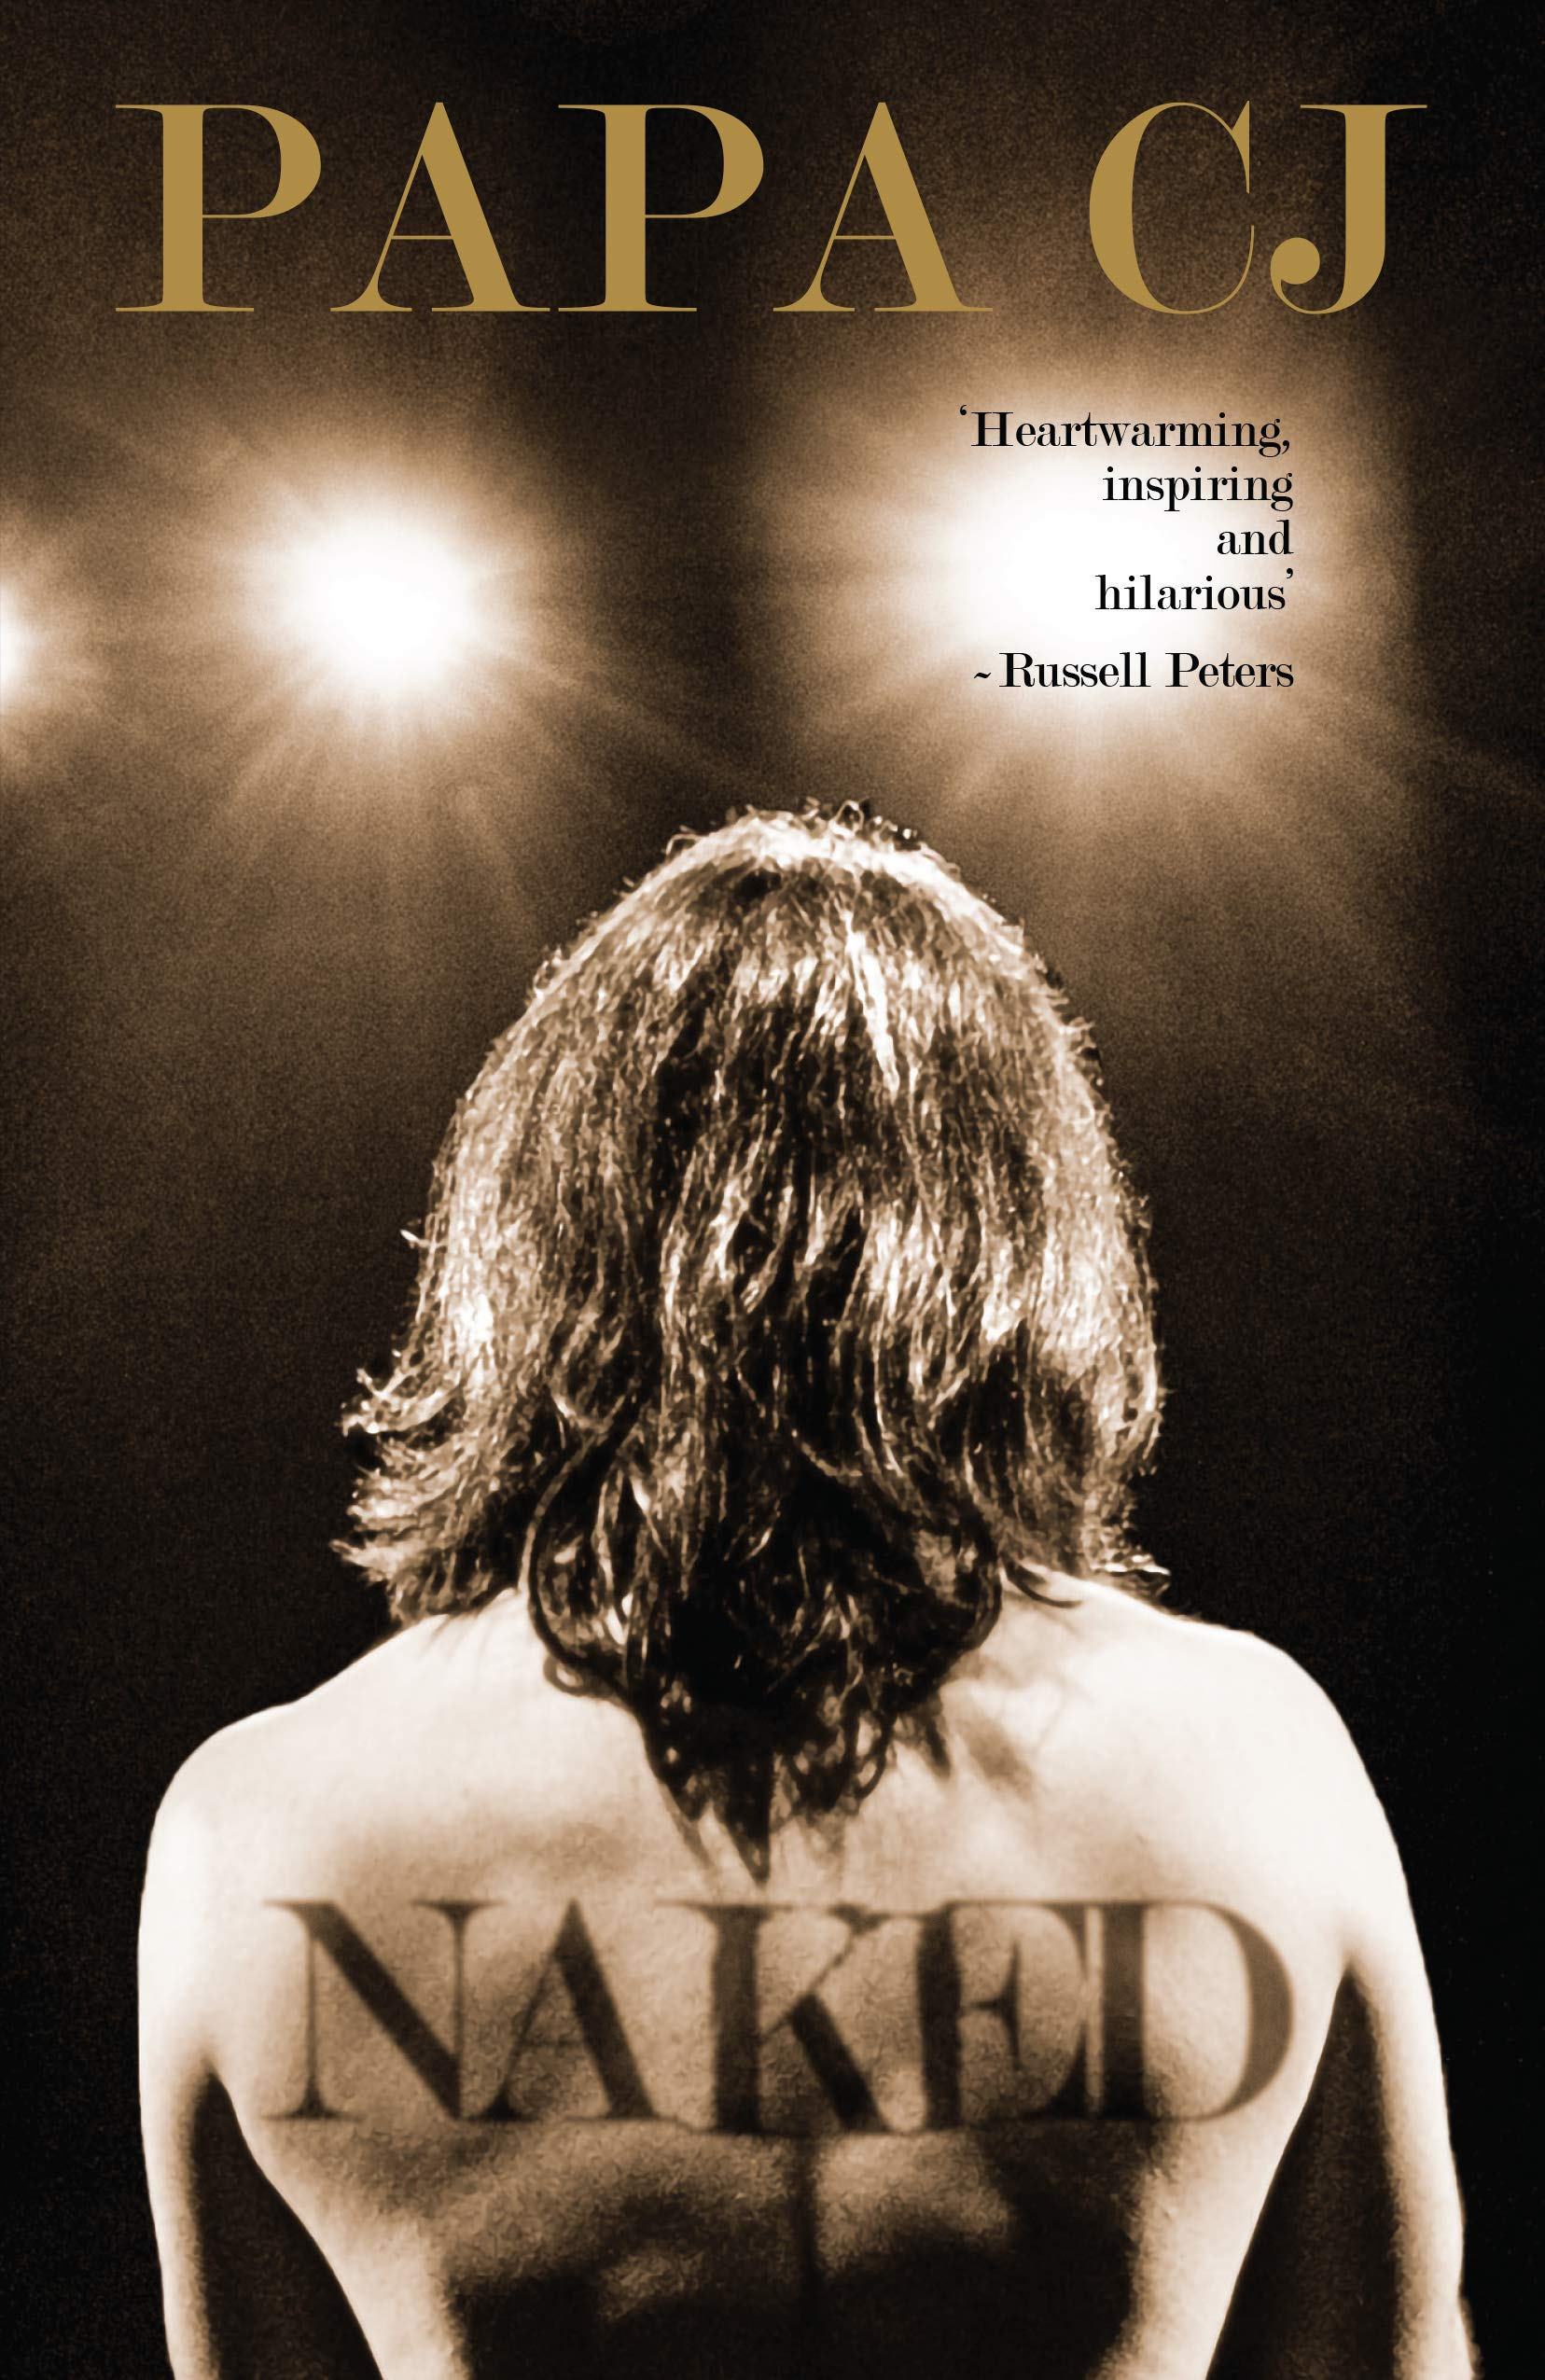 Book Review - Naked by Papa CJ